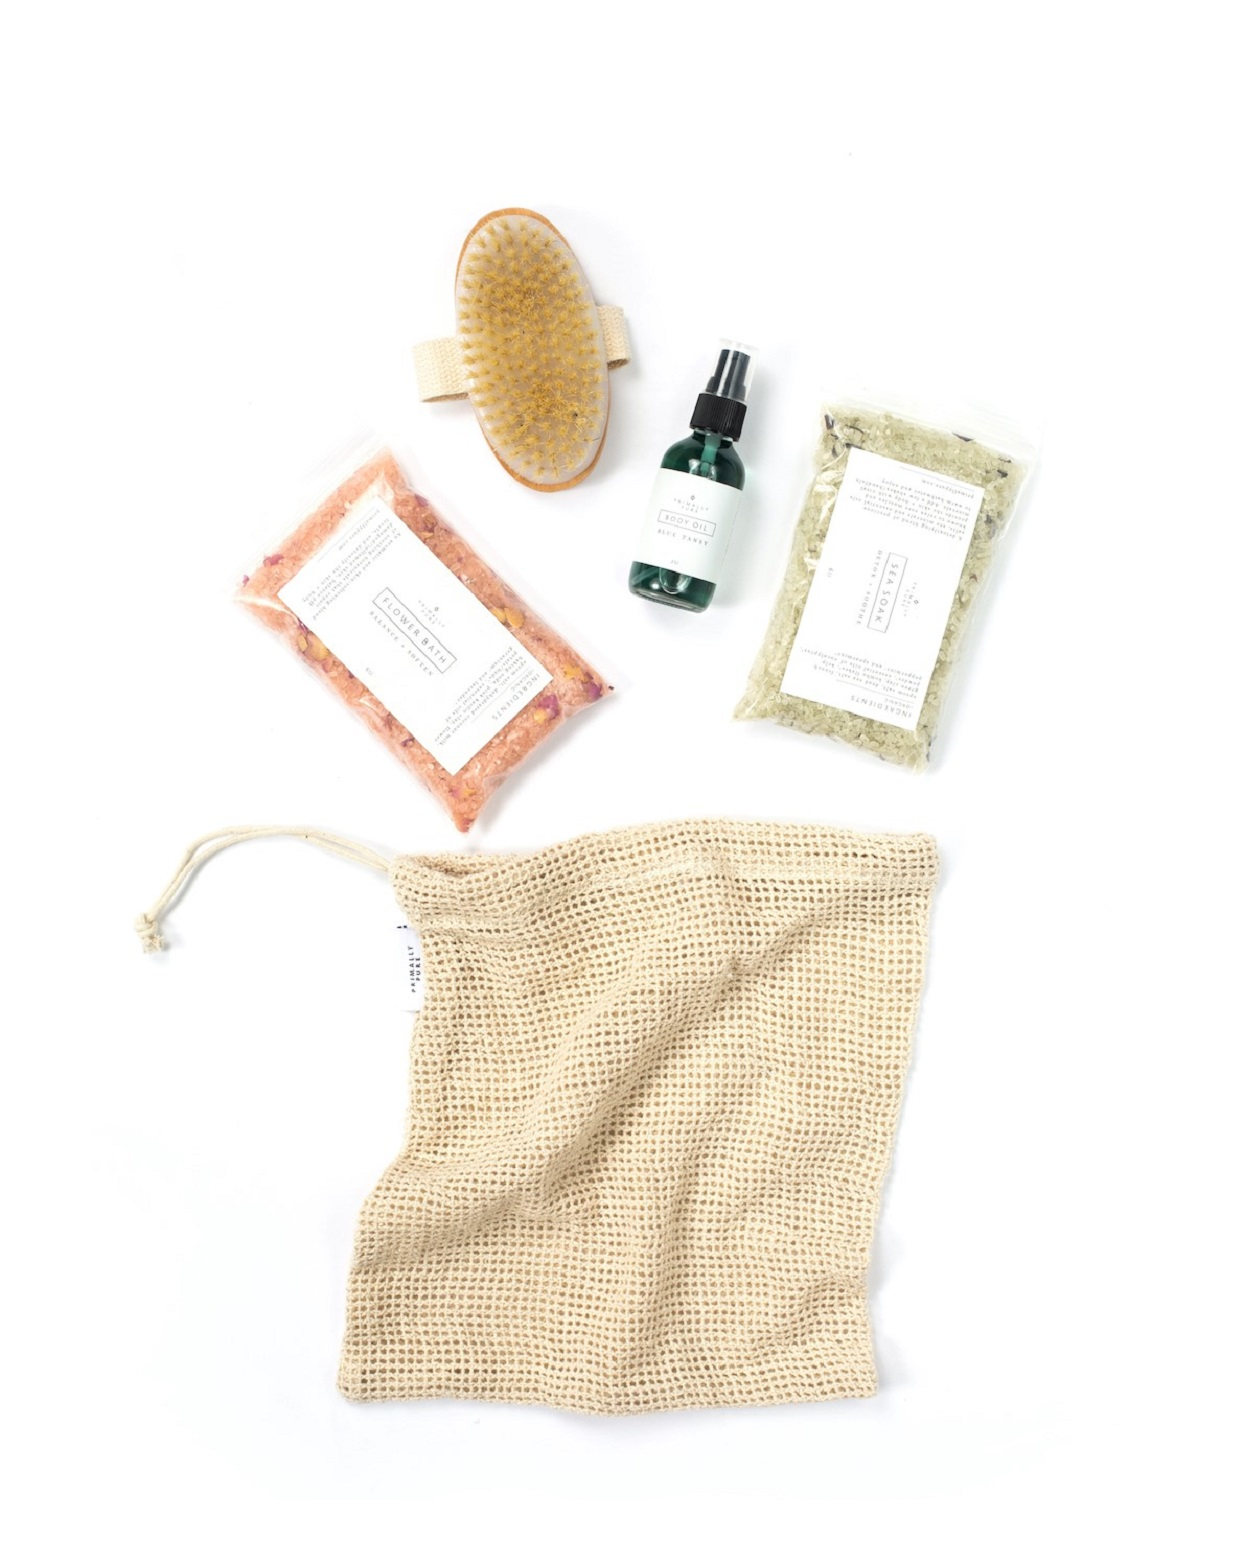 2019 holiday gift guide Primally Pure spa kit